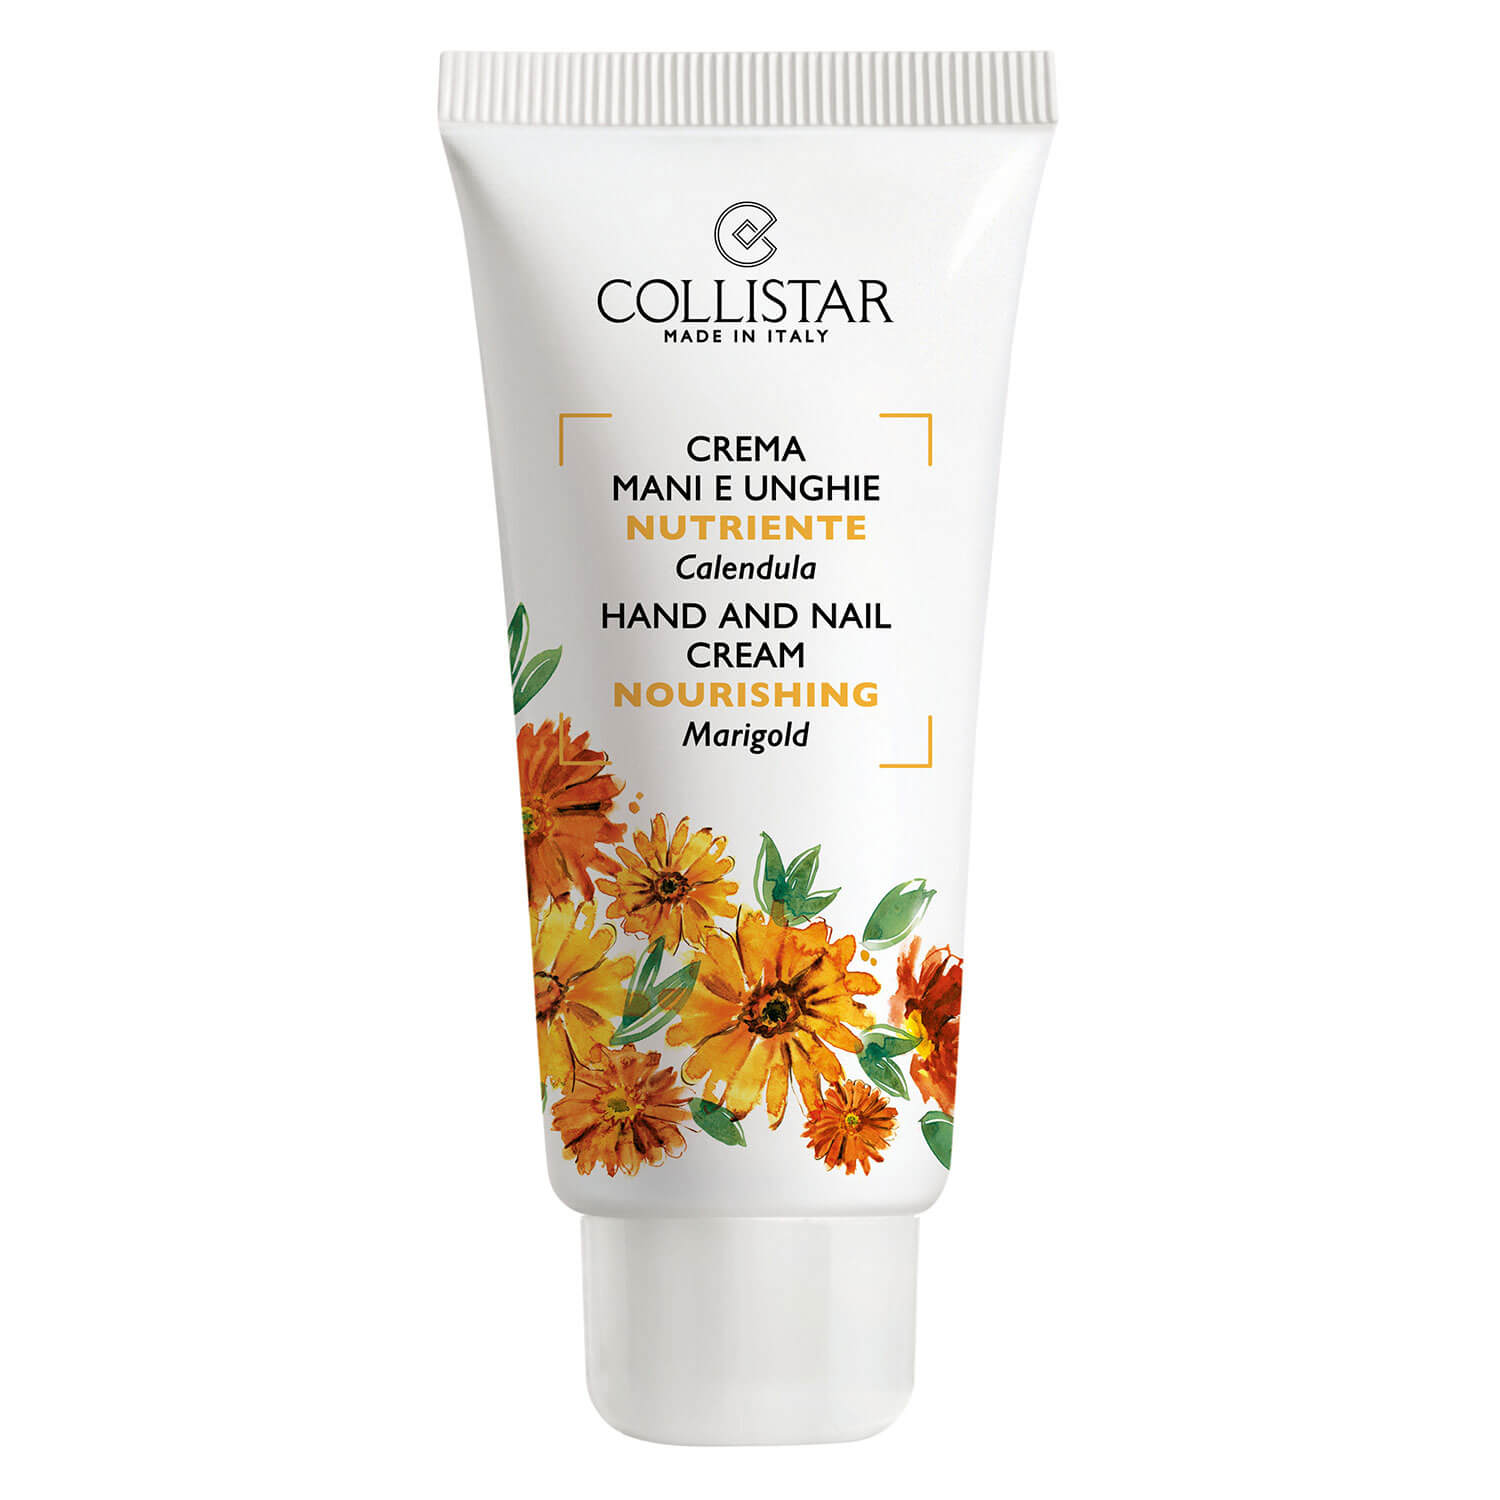 CS Body - Hand and Nail Cream Nourishing Marigold